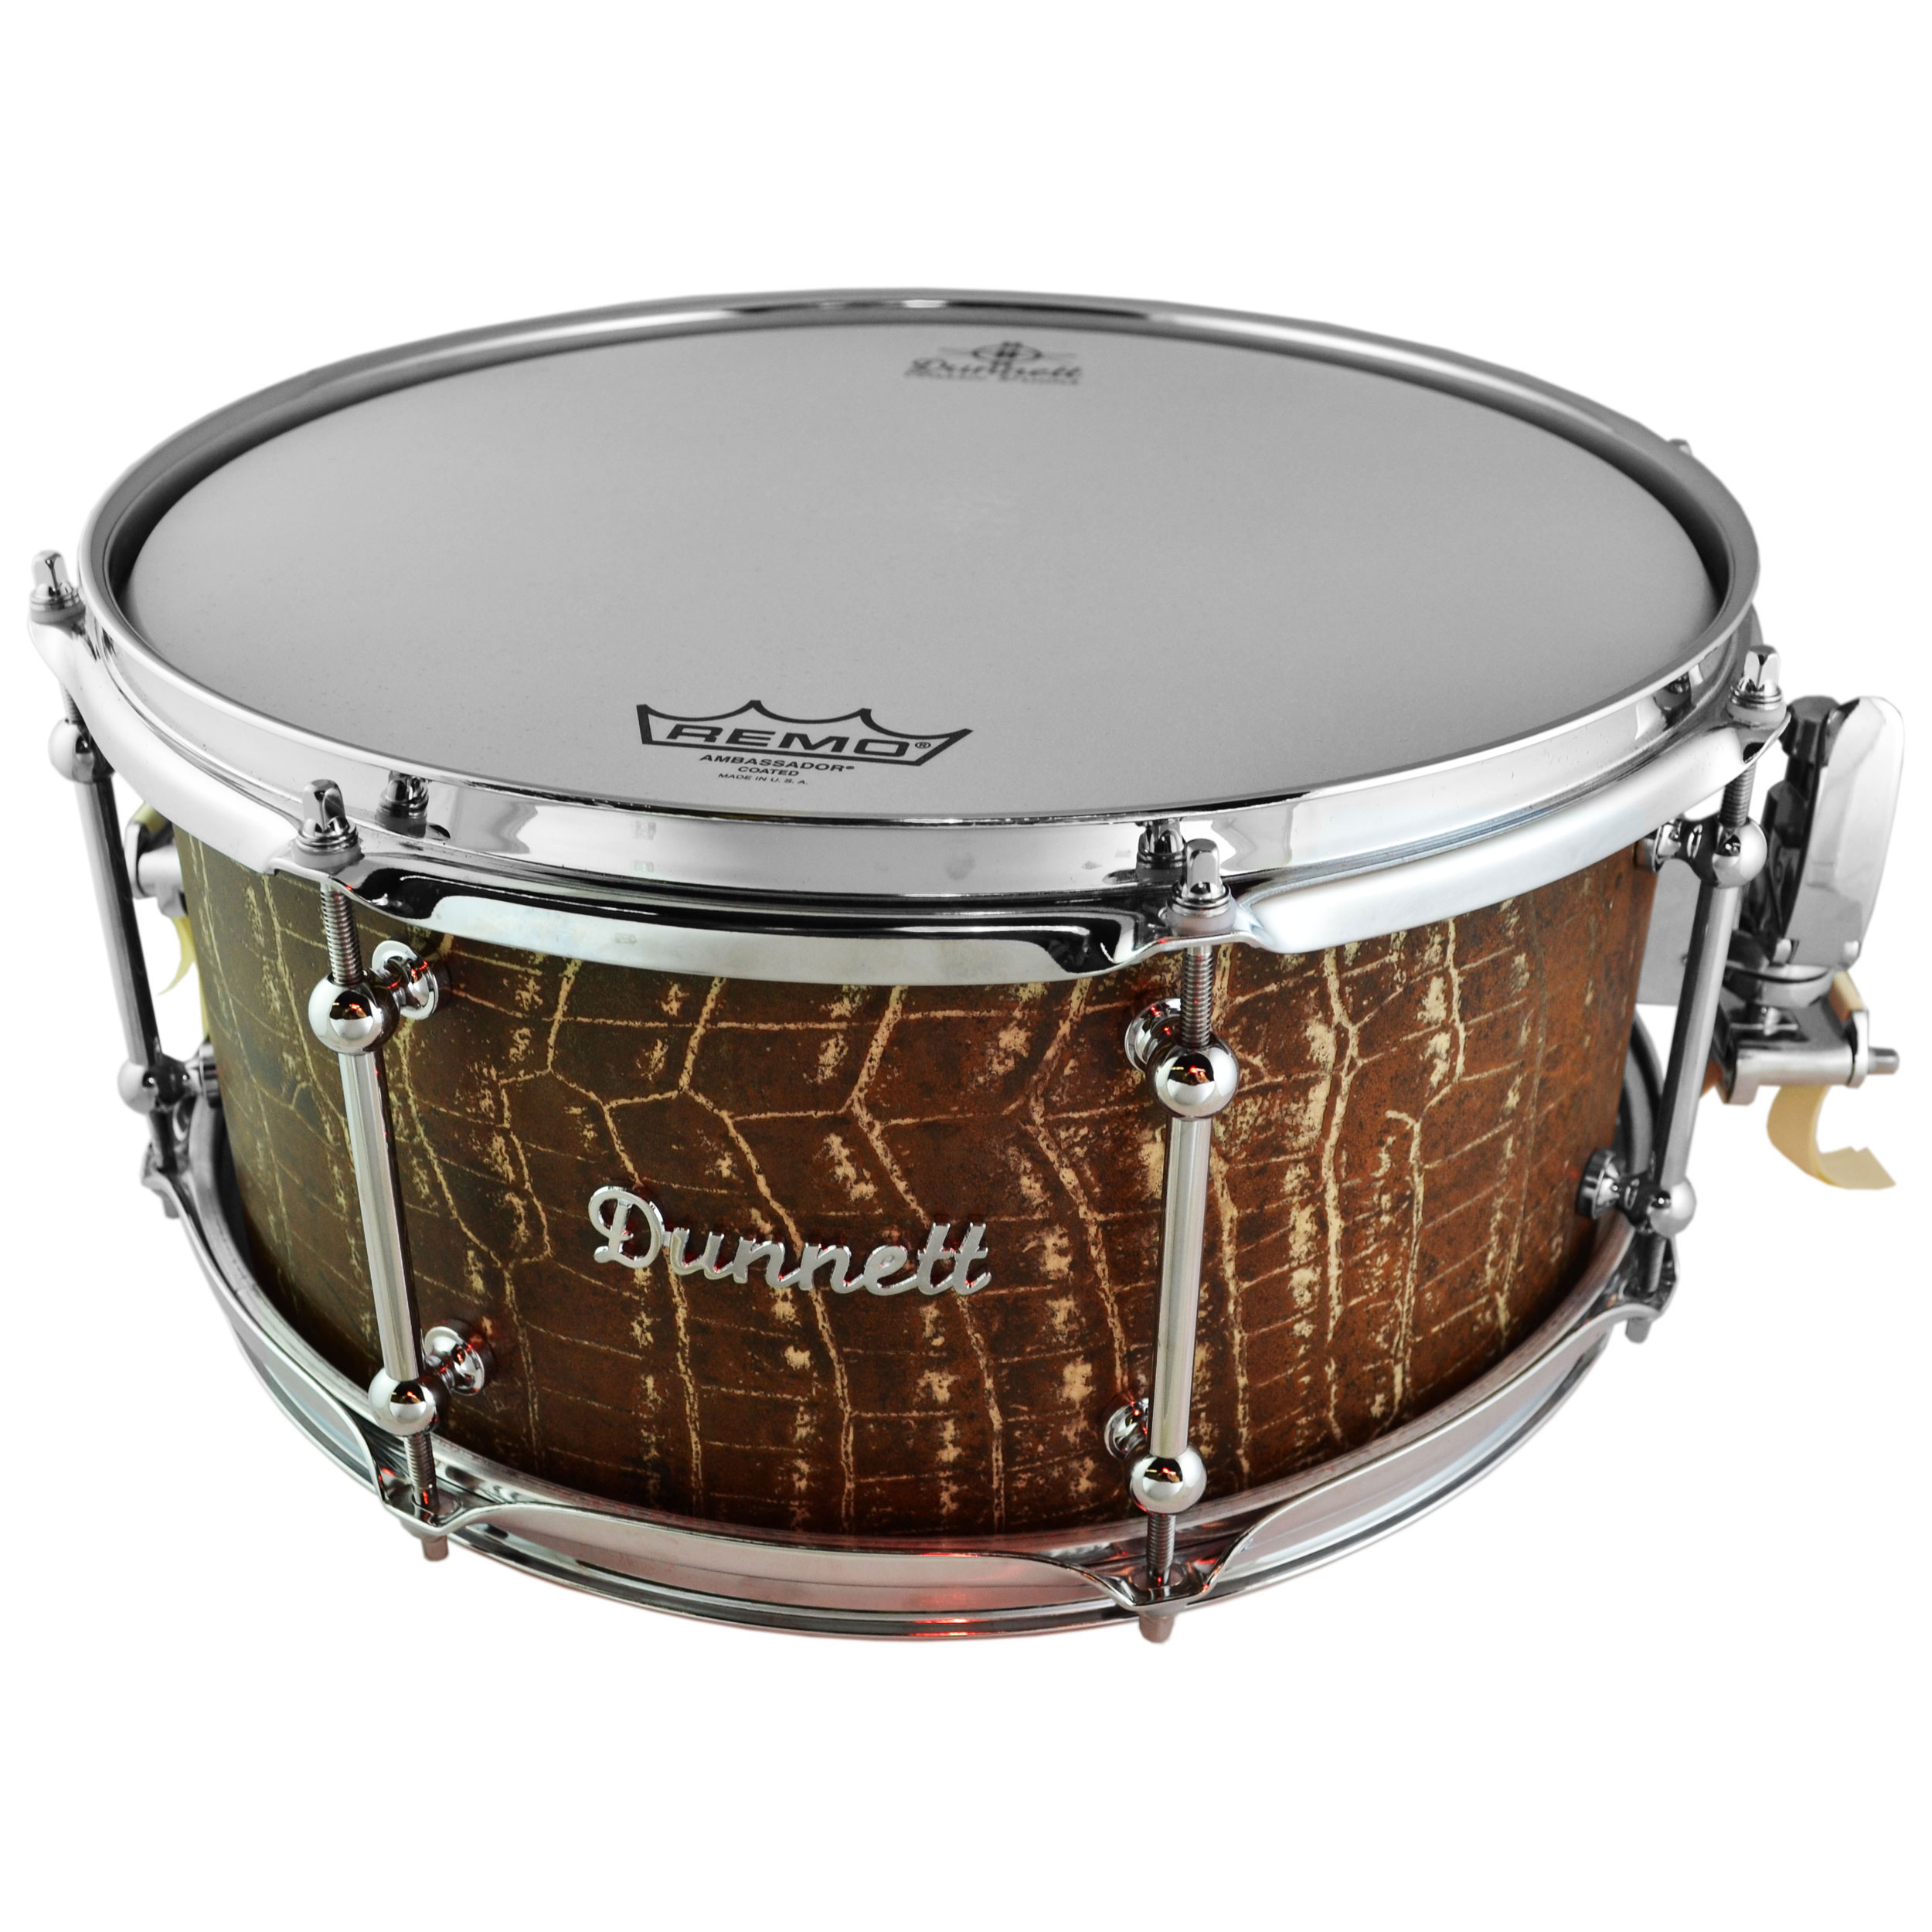 "Dunnett 6.5"" x 14"" James Trussart Gator Steel Snare Drum"